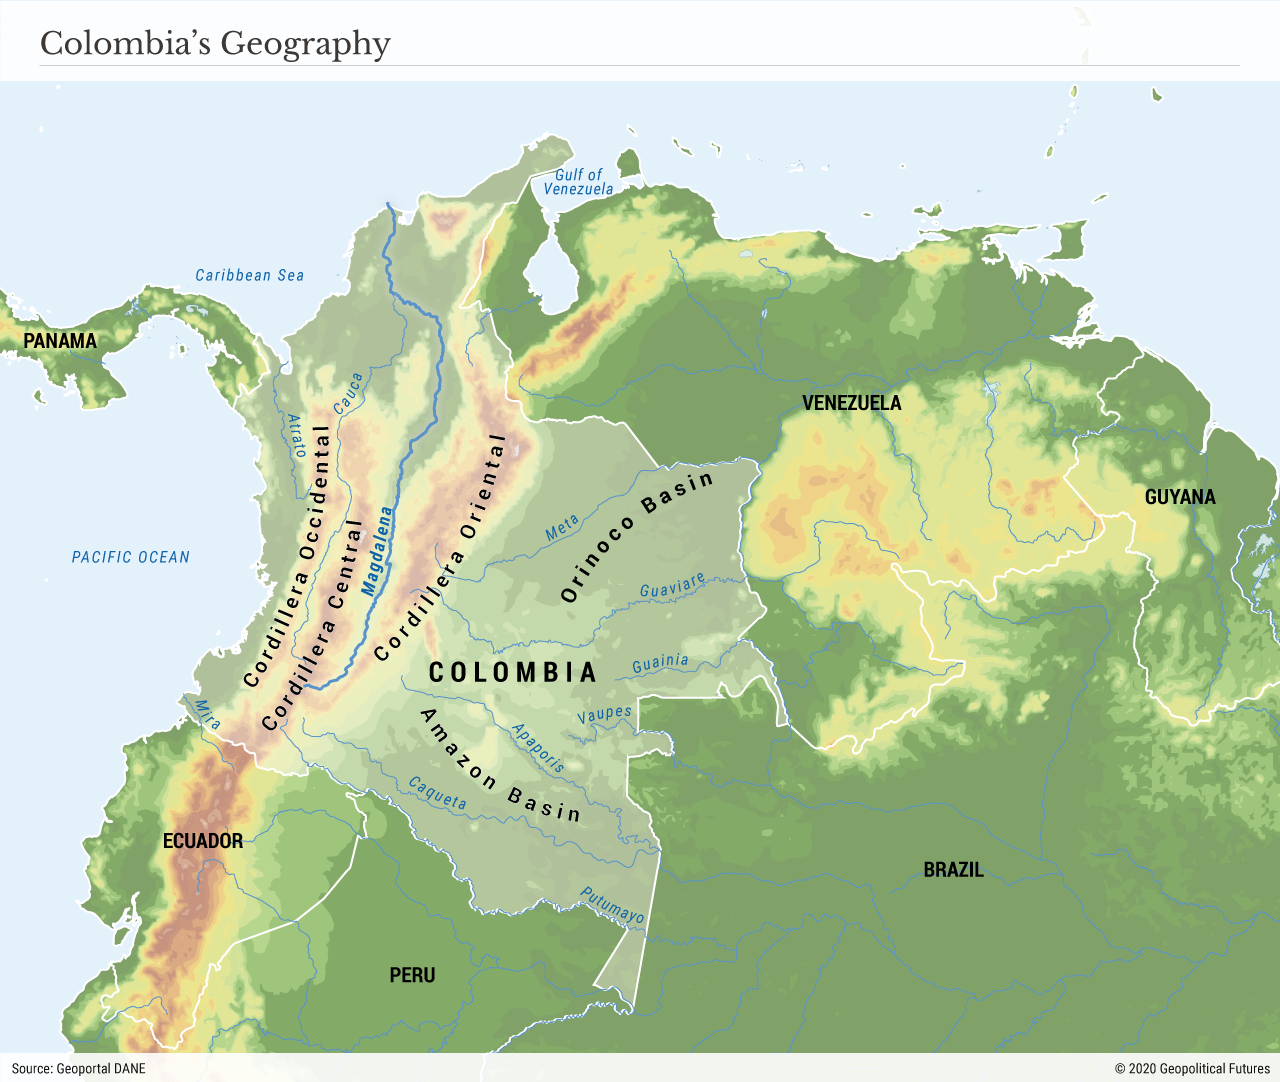 Colombia's Geography